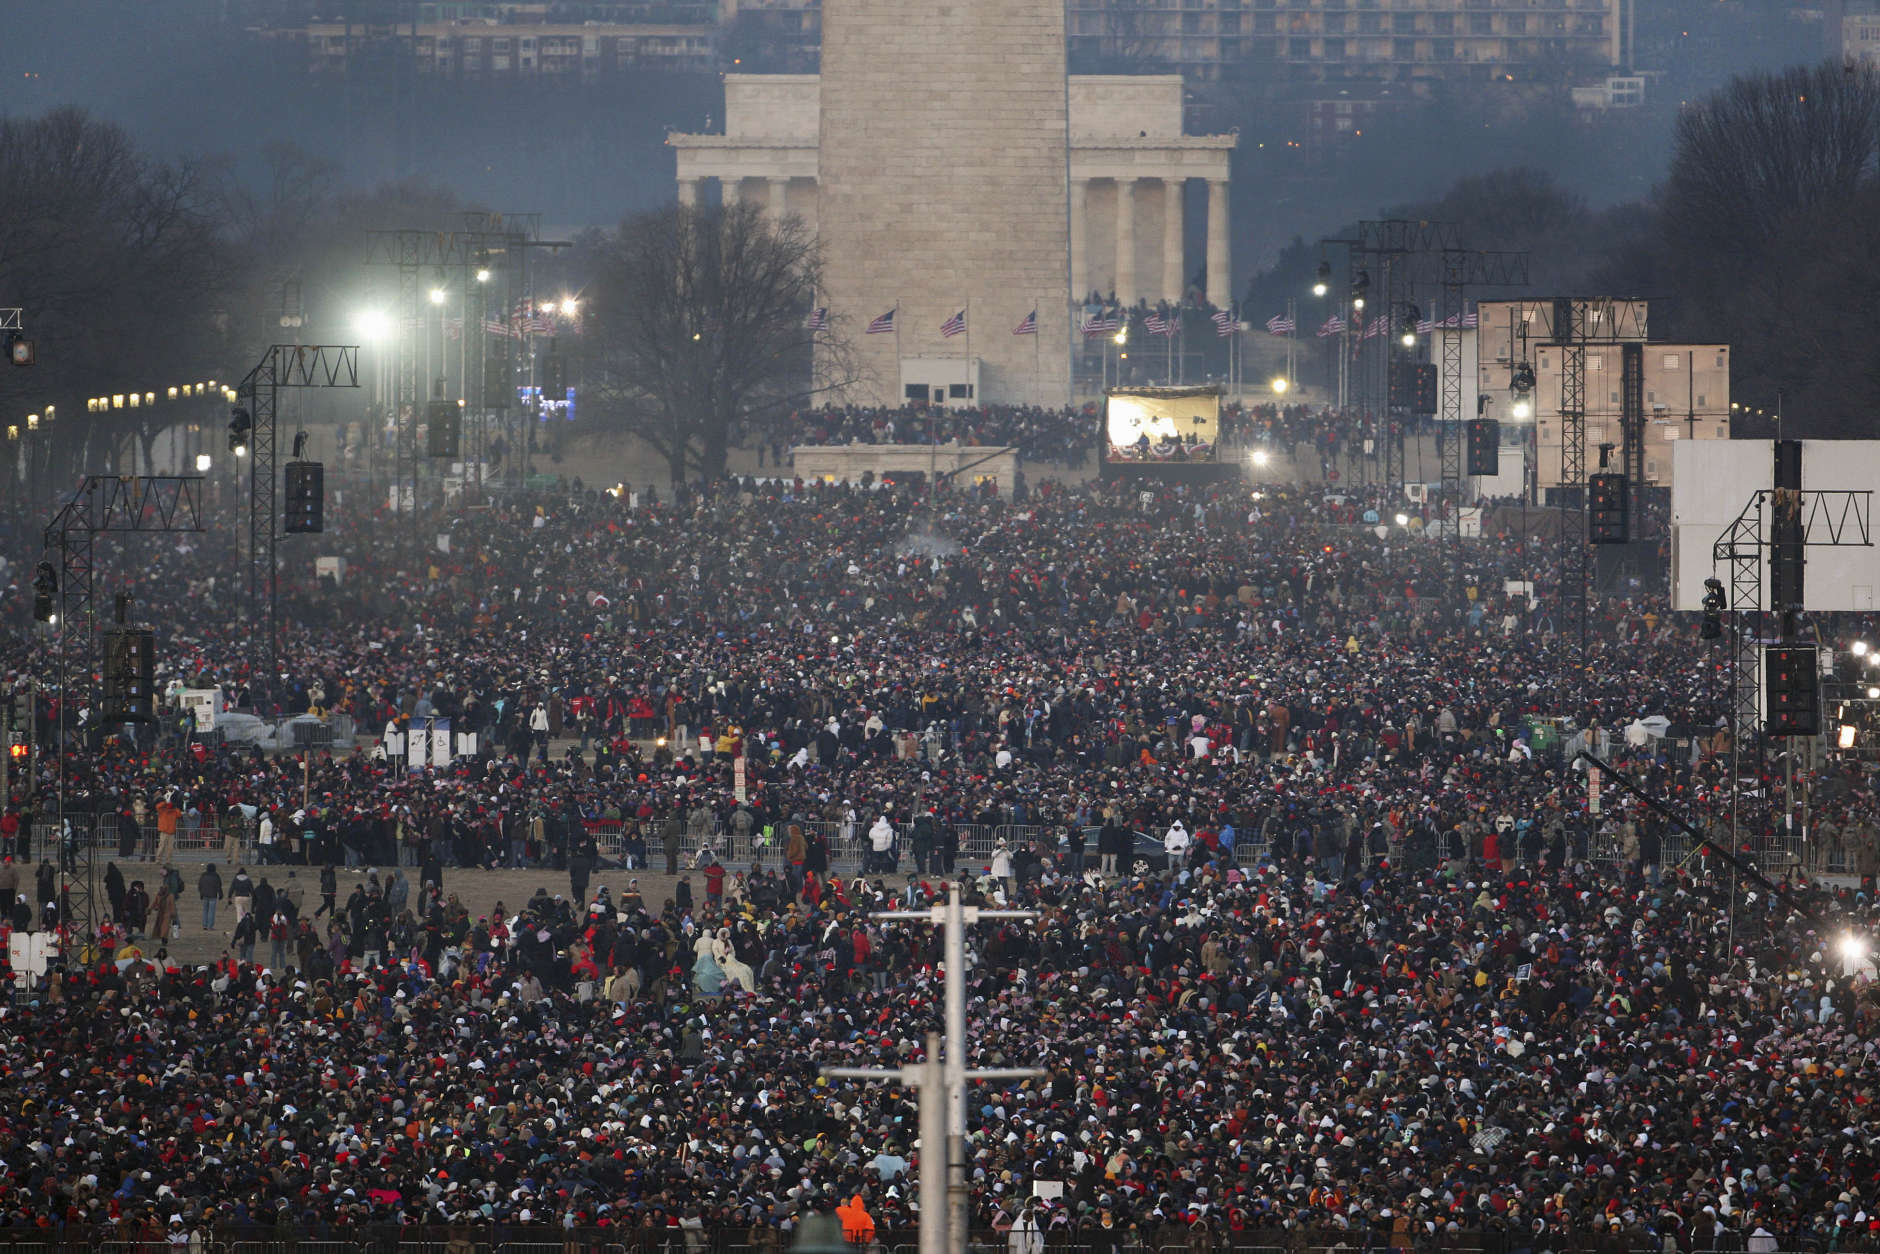 Crowds gather early on the National Mall for the swearing-in ceremony for President-elect Barack Obama in Washington, Tuesday, Jan. 20, 2009.  (AP Photo/Ron Edmonds)